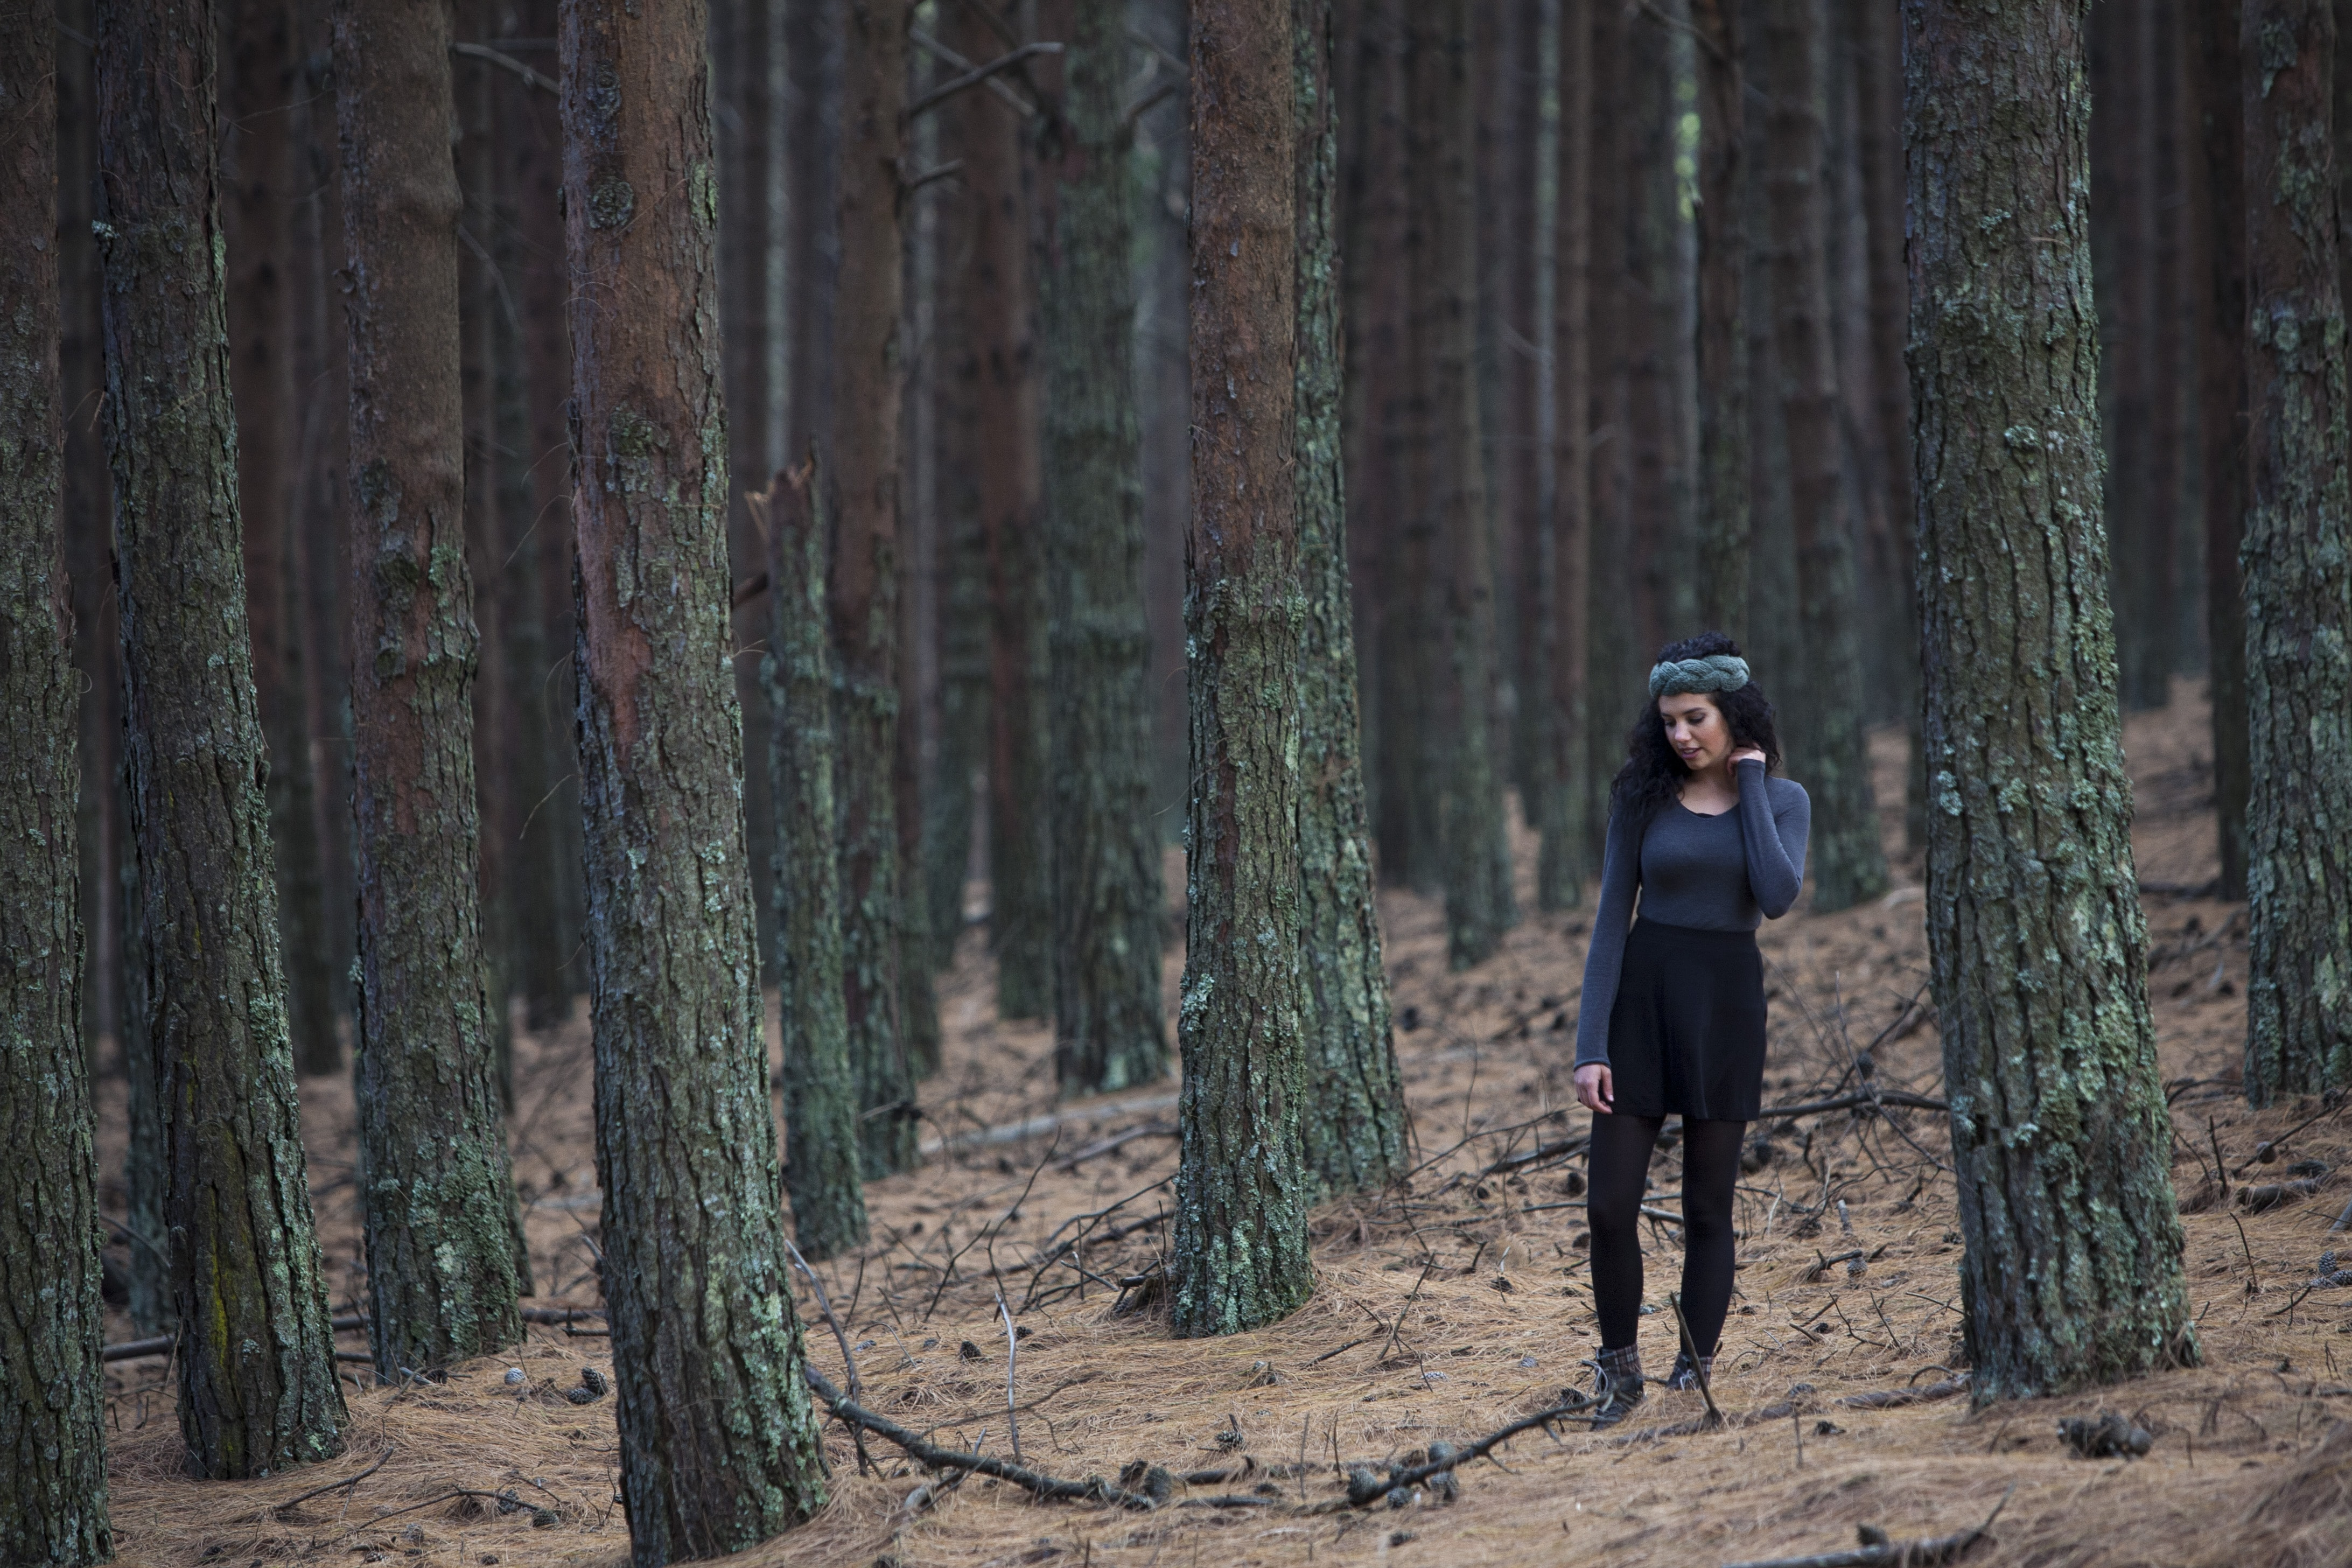 A young woman walks on the needle-covered floor of a pine forest